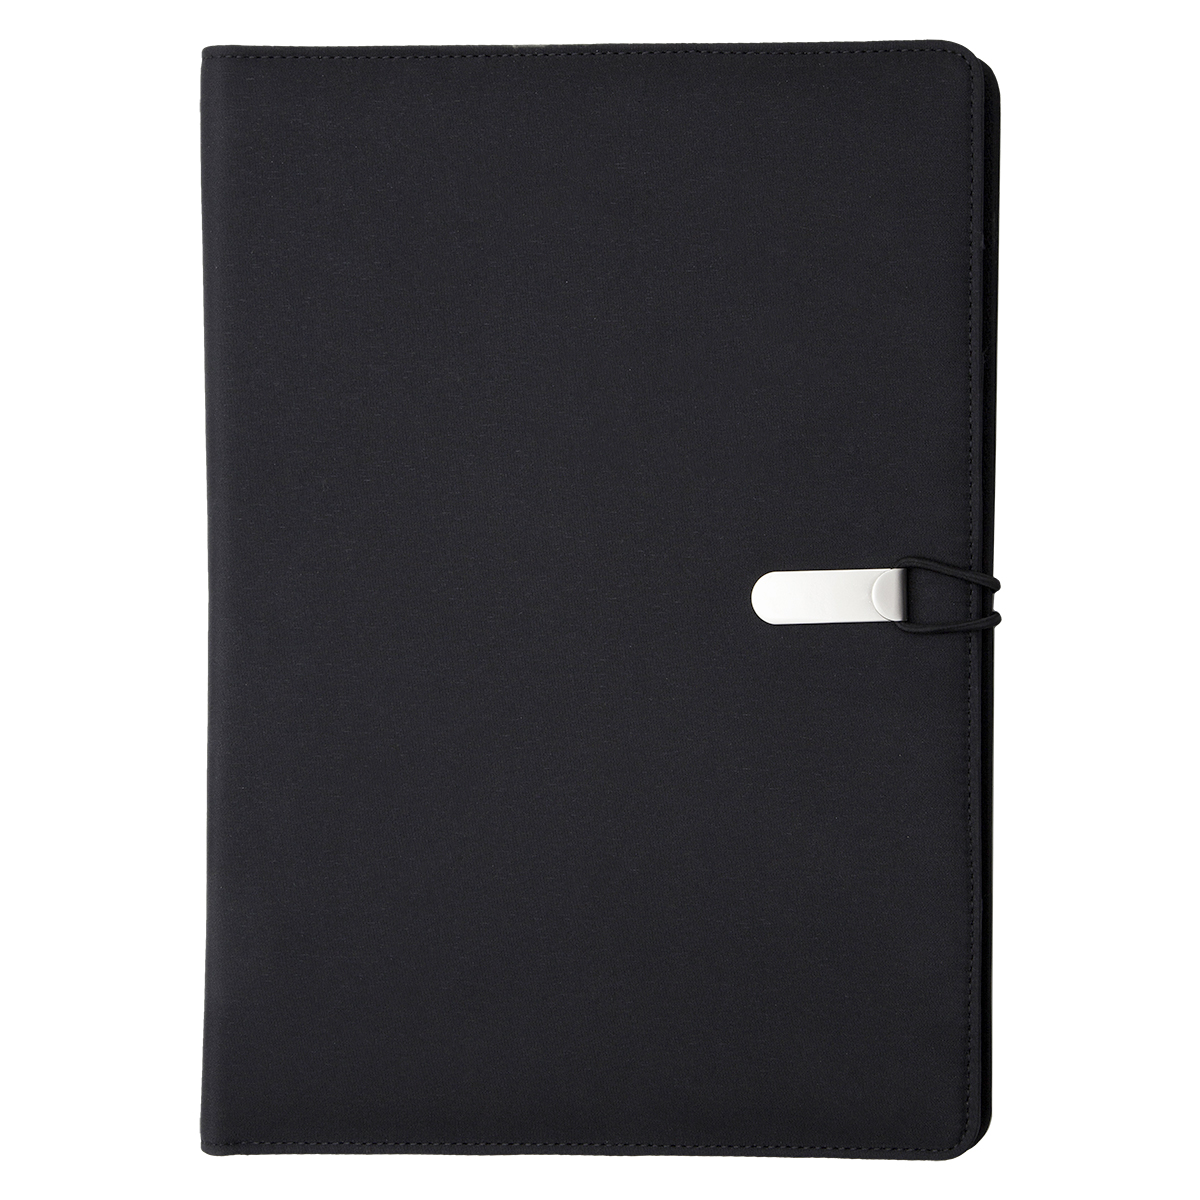 MANTUA document map,  black